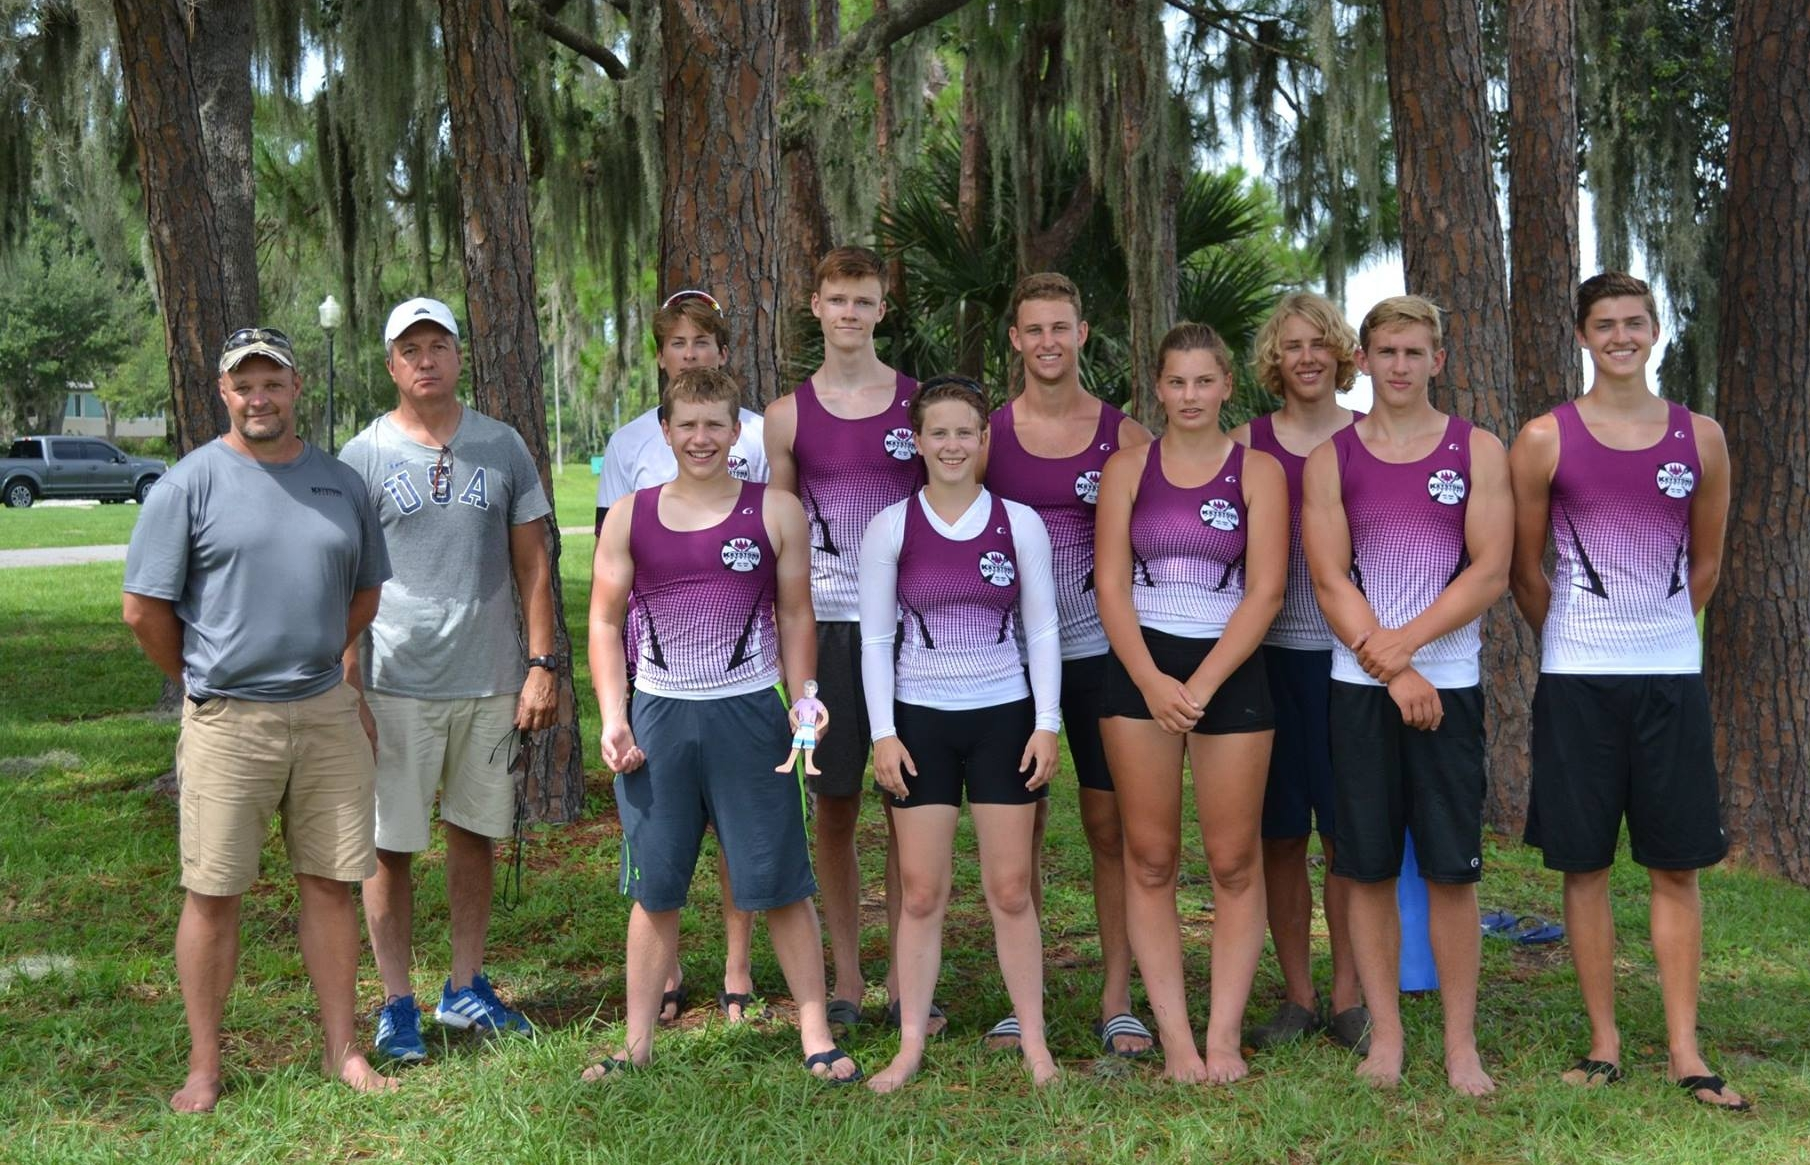 Keystone Paddlers at 2017 Sprint Canoe/Kayak Nationals in Clermont, Florida